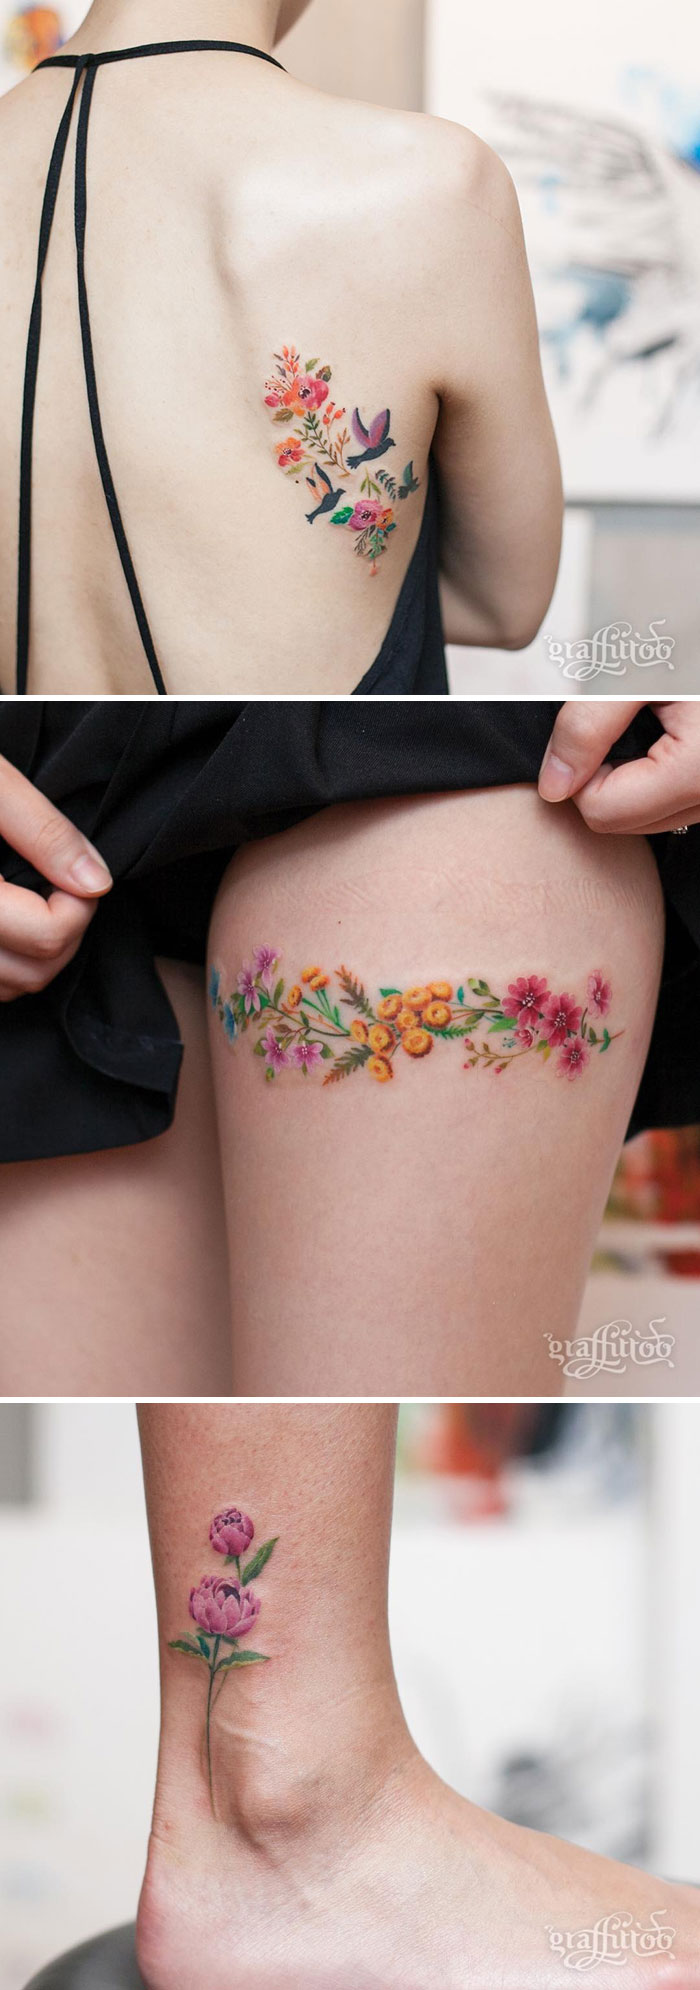 floral-tattoo-artists-21-58e25ec3bd303__700